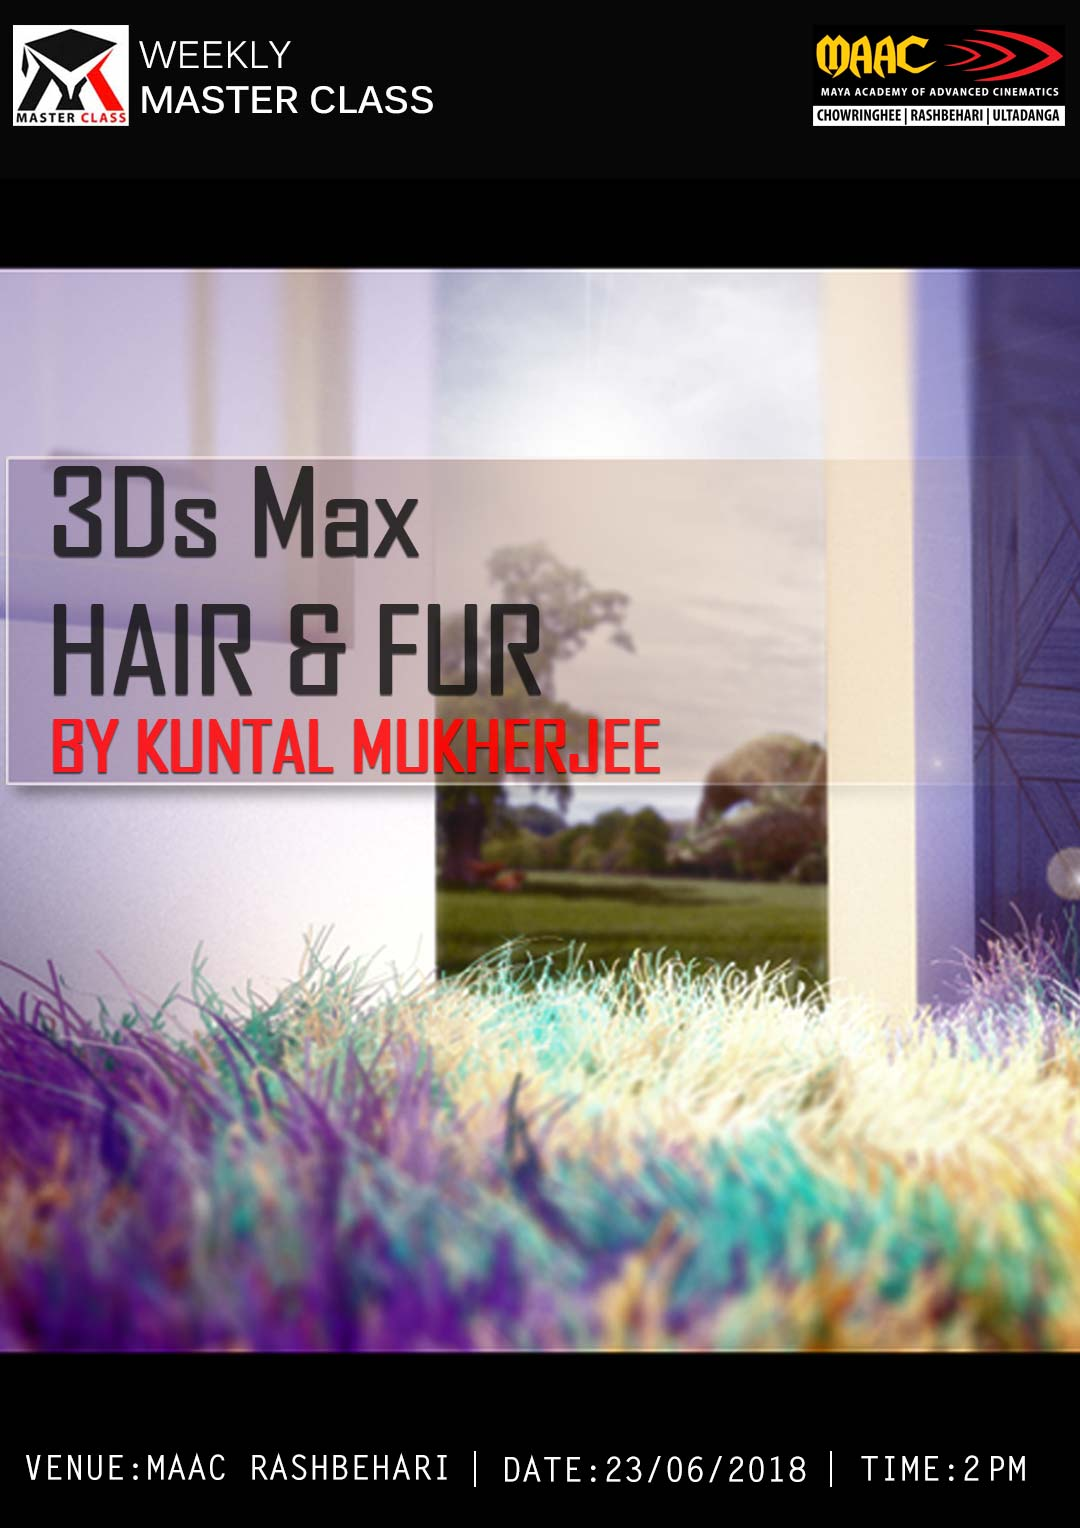 Weekly Master Class on 3ds Max Hair and Fur